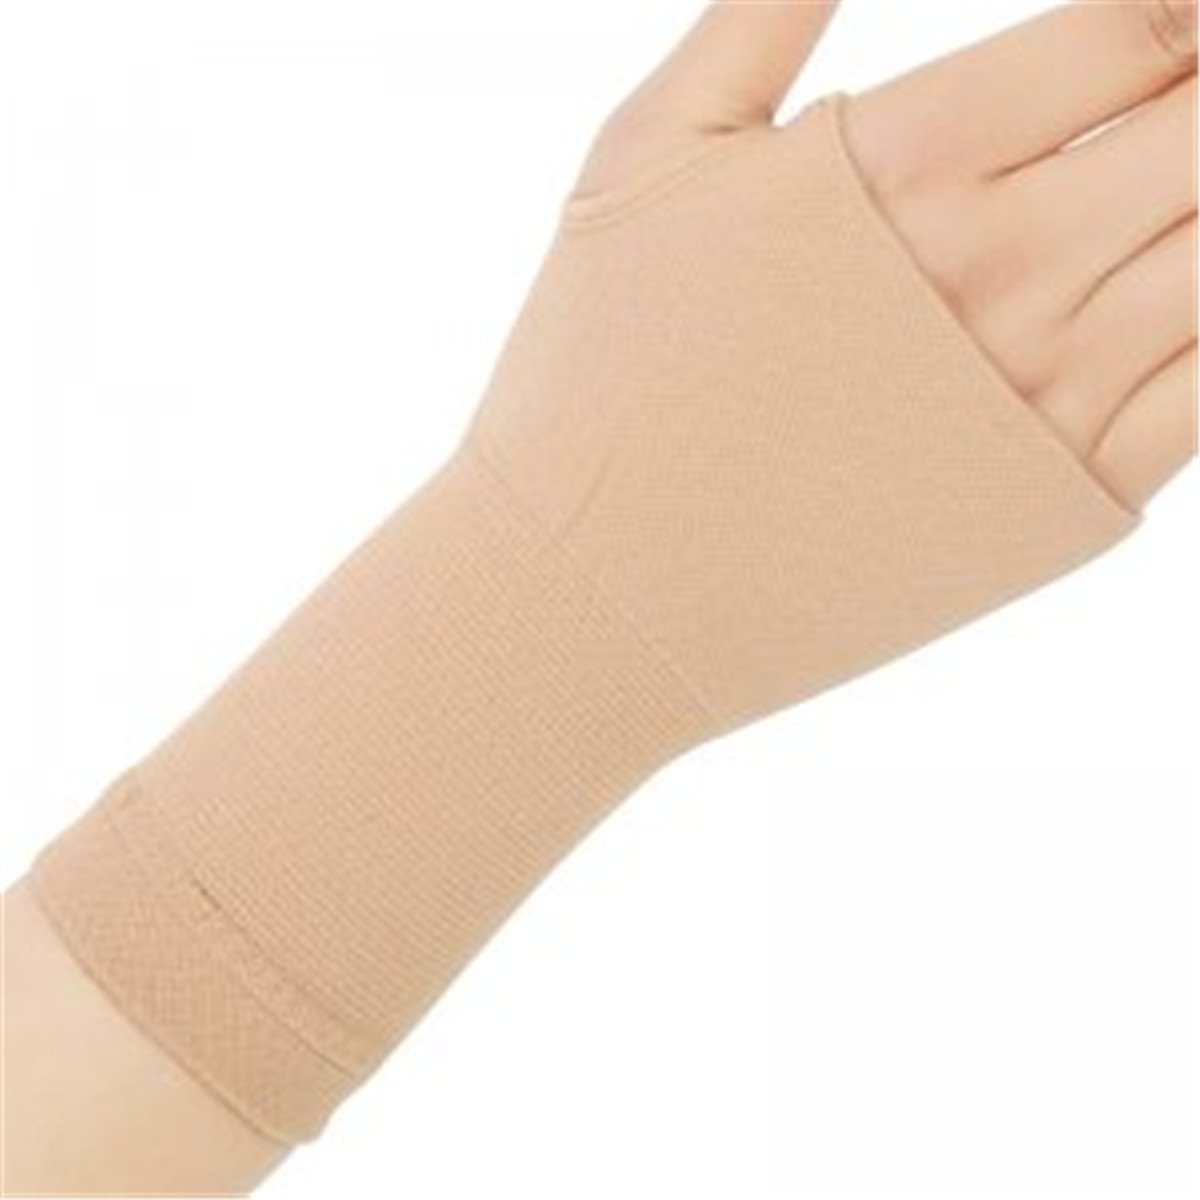 Therapy Gloves Arthritis Compression Gloves Medical Stretch Bracers Elbow Wrist Scar Hand Health Care Physiotherapy Rehabilitation Suitable for Men and Women 1 Pair